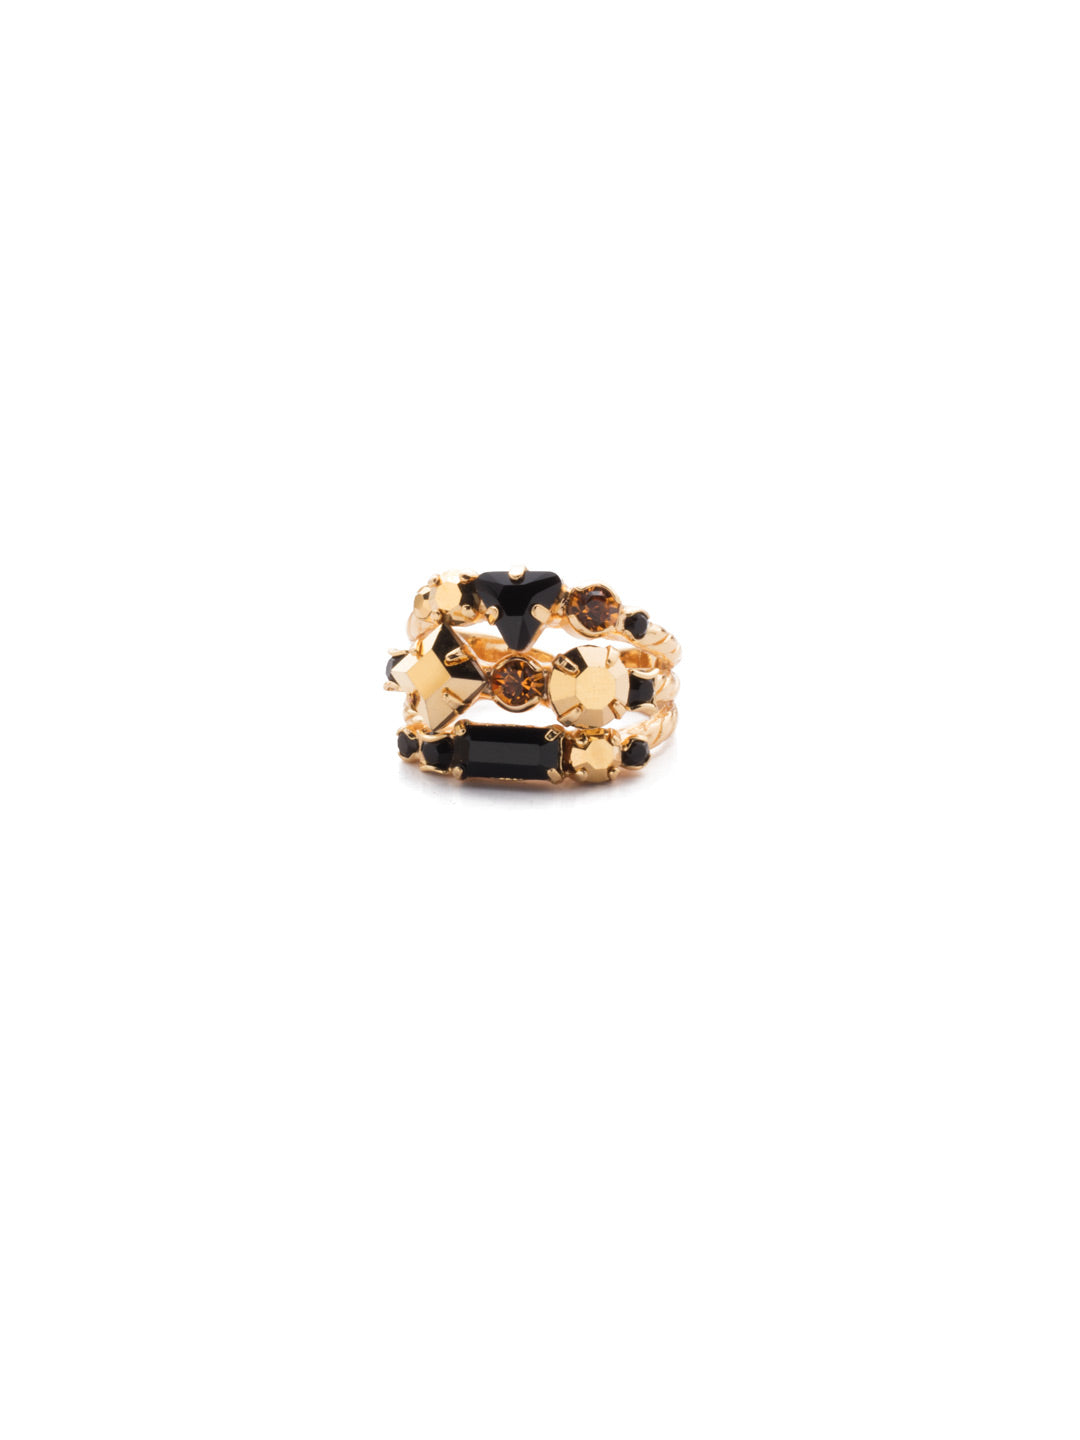 Sedge Stacked Stacked Ring - RDX1BGGTR